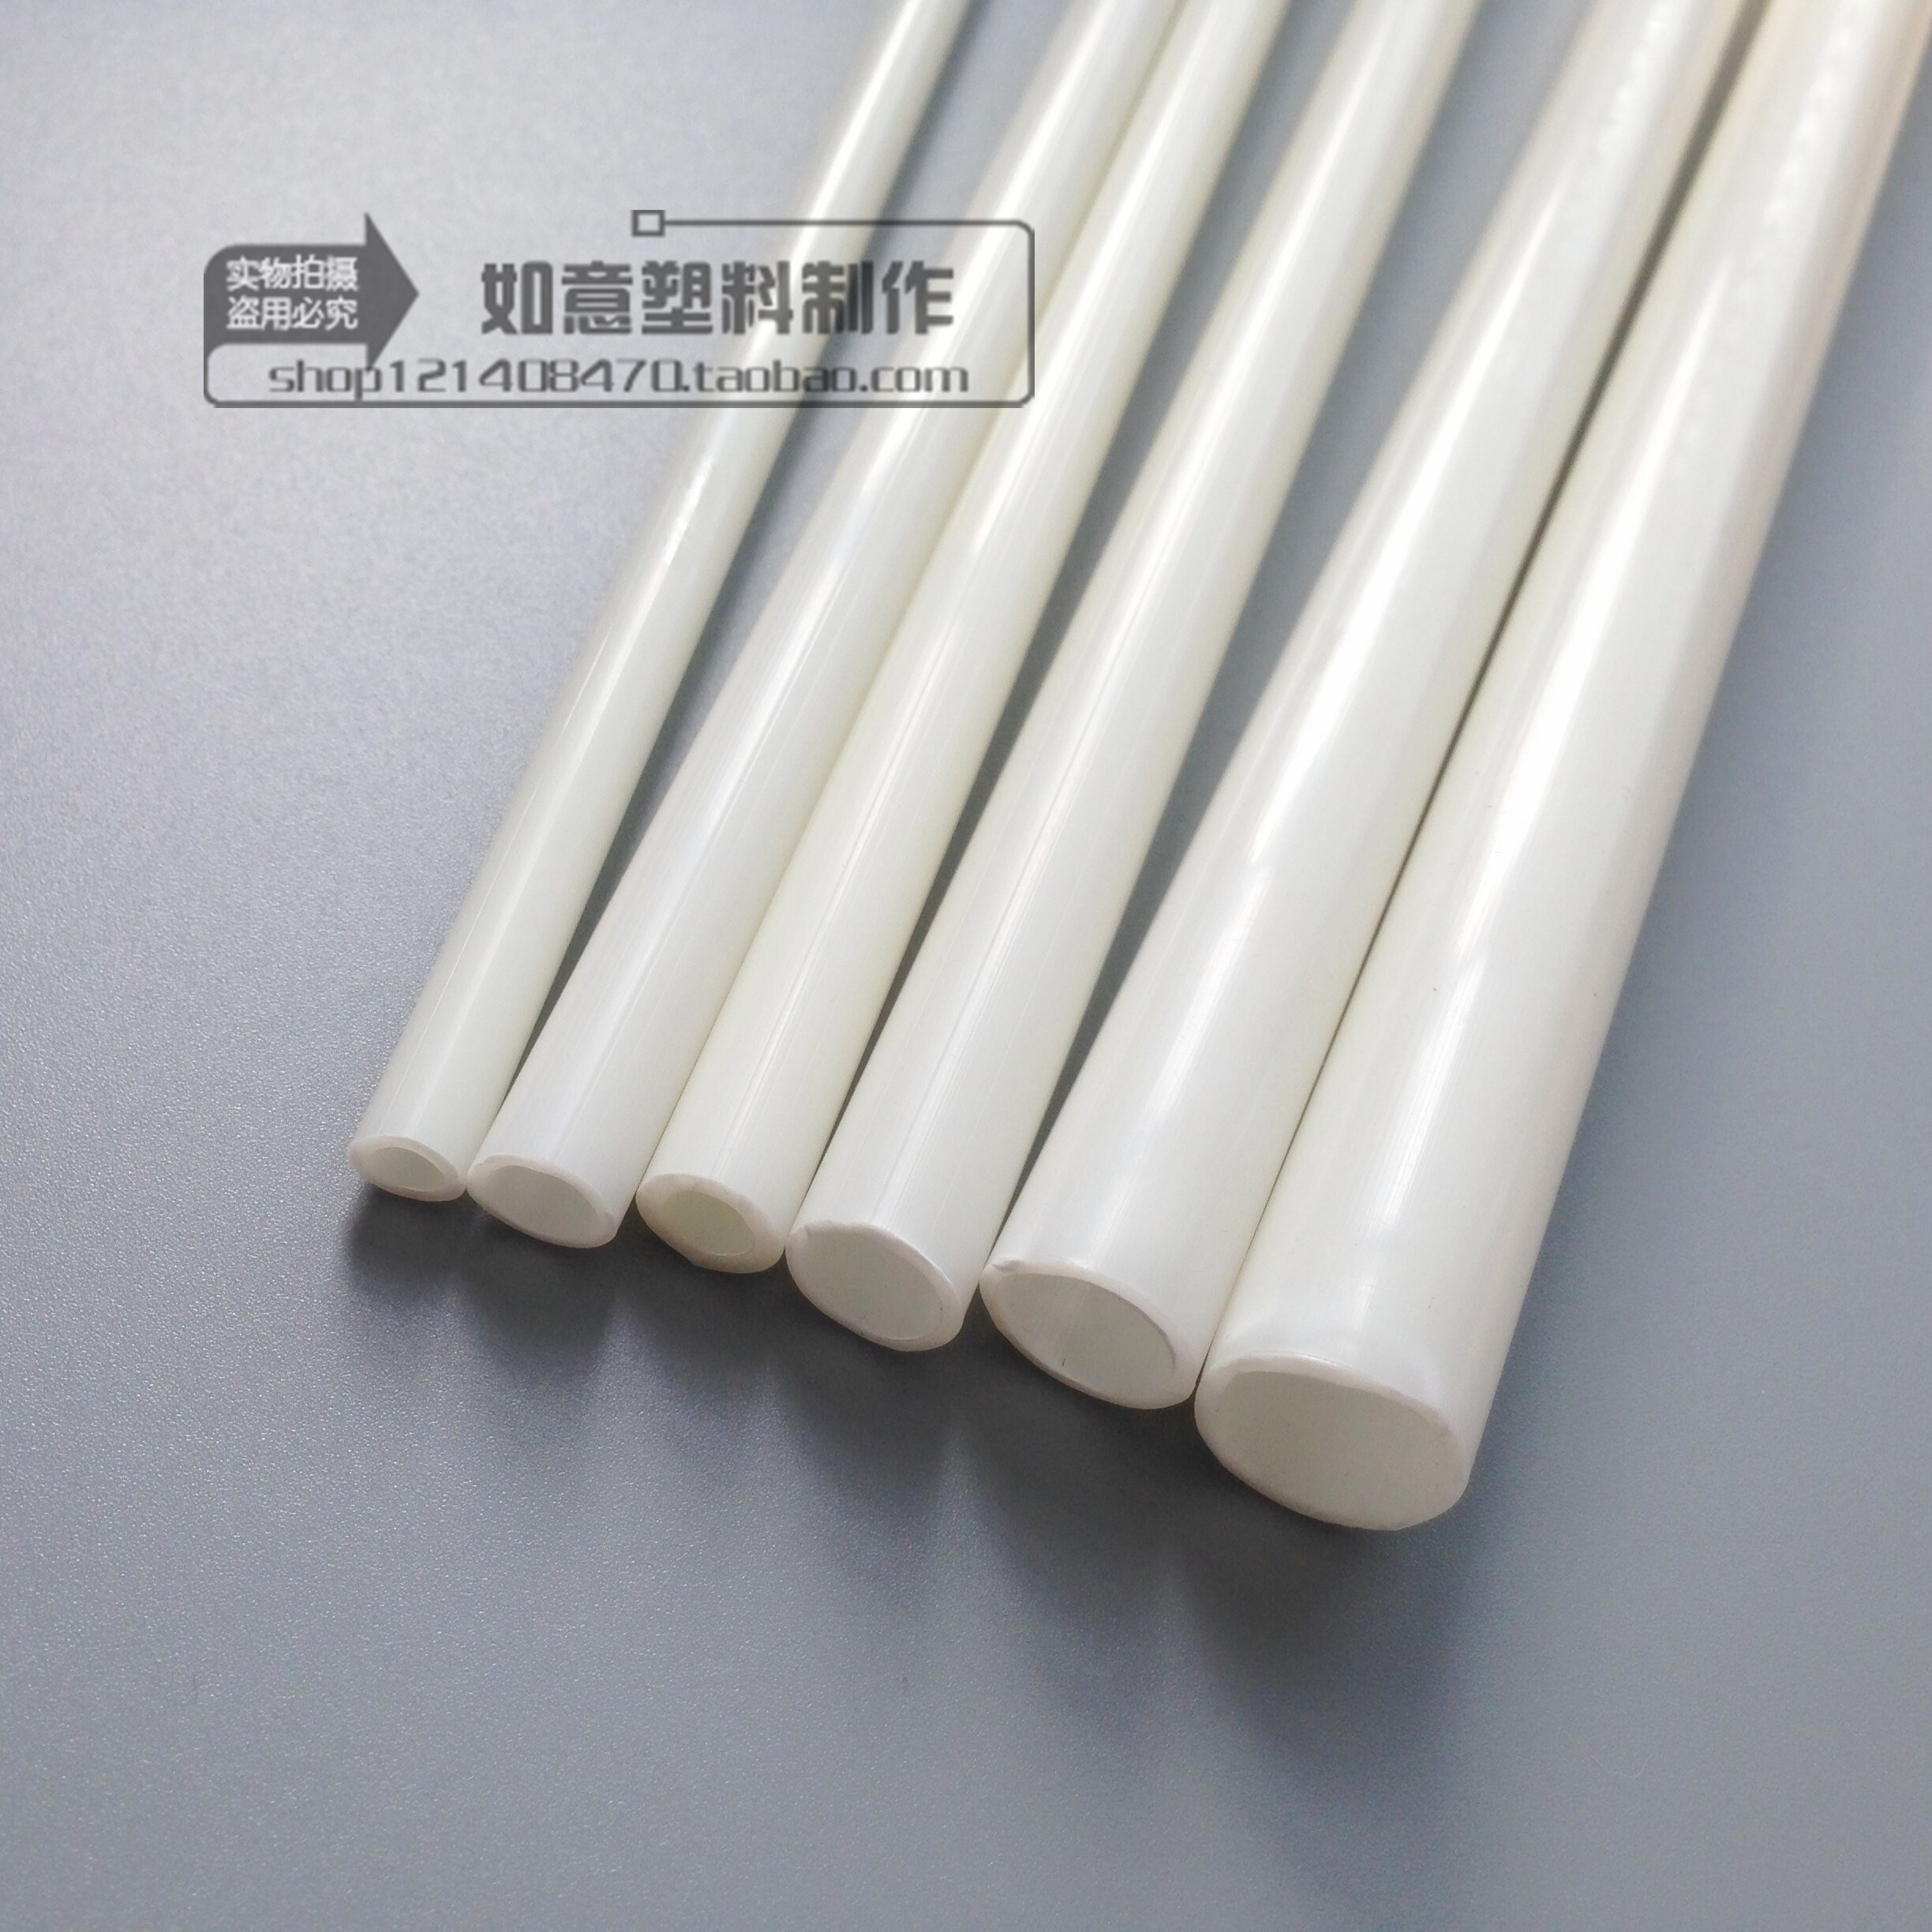 ABS pipe plastic pipe hard straight pipe outer diameter 5 6